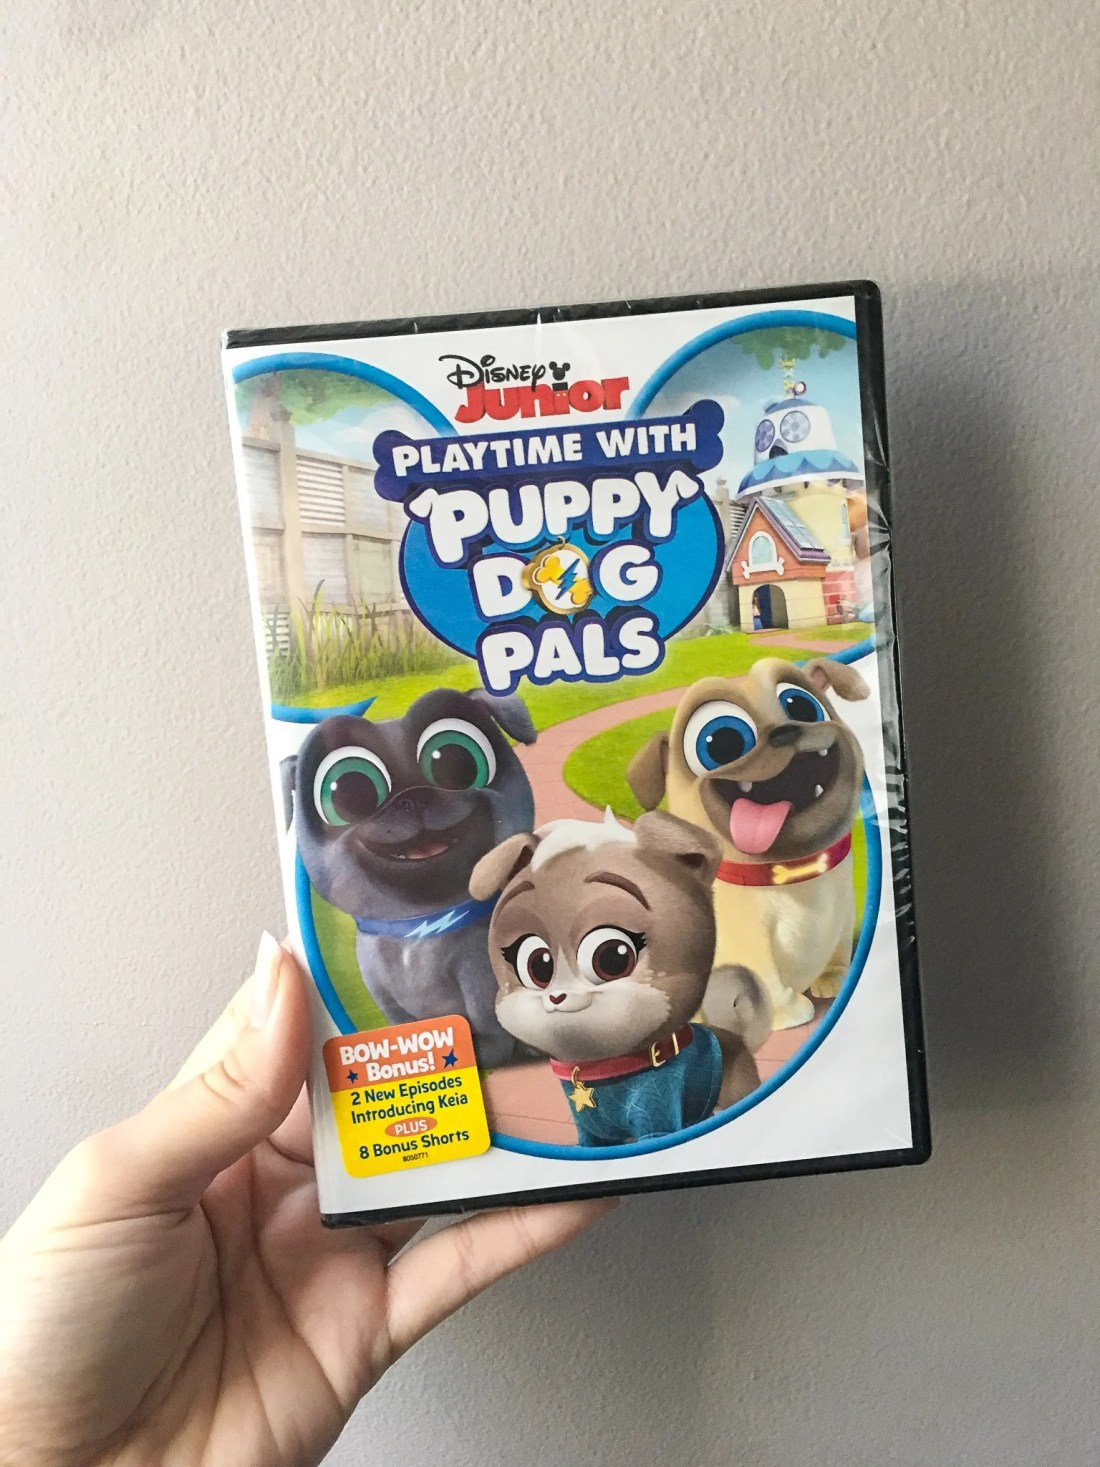 DIsney Junior Playtime With Puppy Dog Plays DVD Closeup. Adorable puppy brothers Bingo and Rolly are back! Join the doggy duo on amazing missions in their newest Playtime with Puppy Dog Pals DVD.